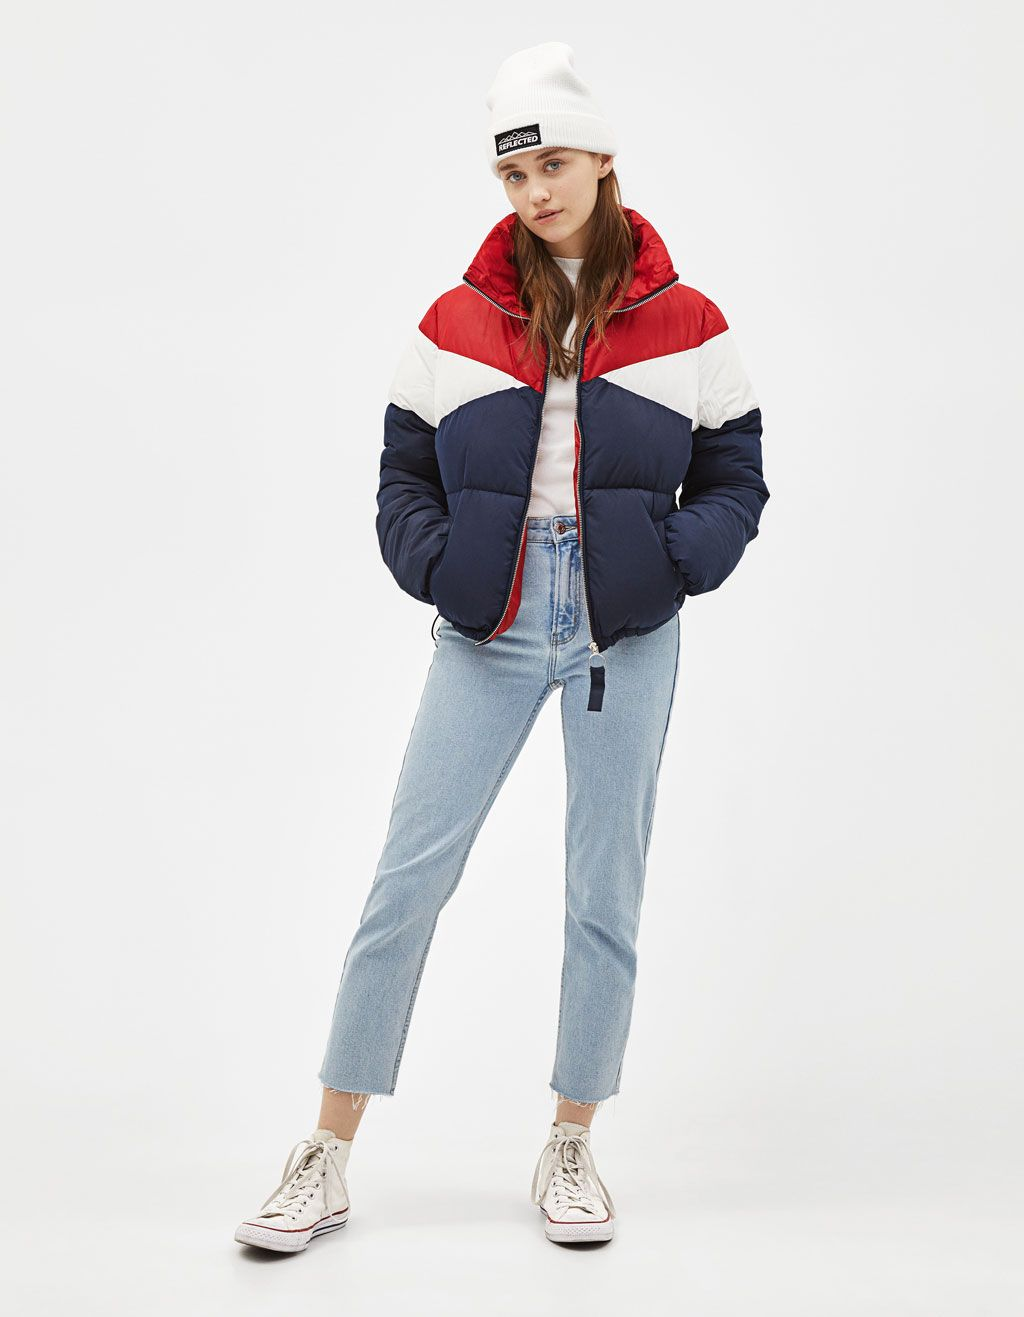 Colour Block Puffer Jacket Discover This And Many More Items In Bershka With New Products Every Week Puffer Jacket Outfit Puffy Jacket Outfit Bershka Outfit [ 1317 x 1024 Pixel ]